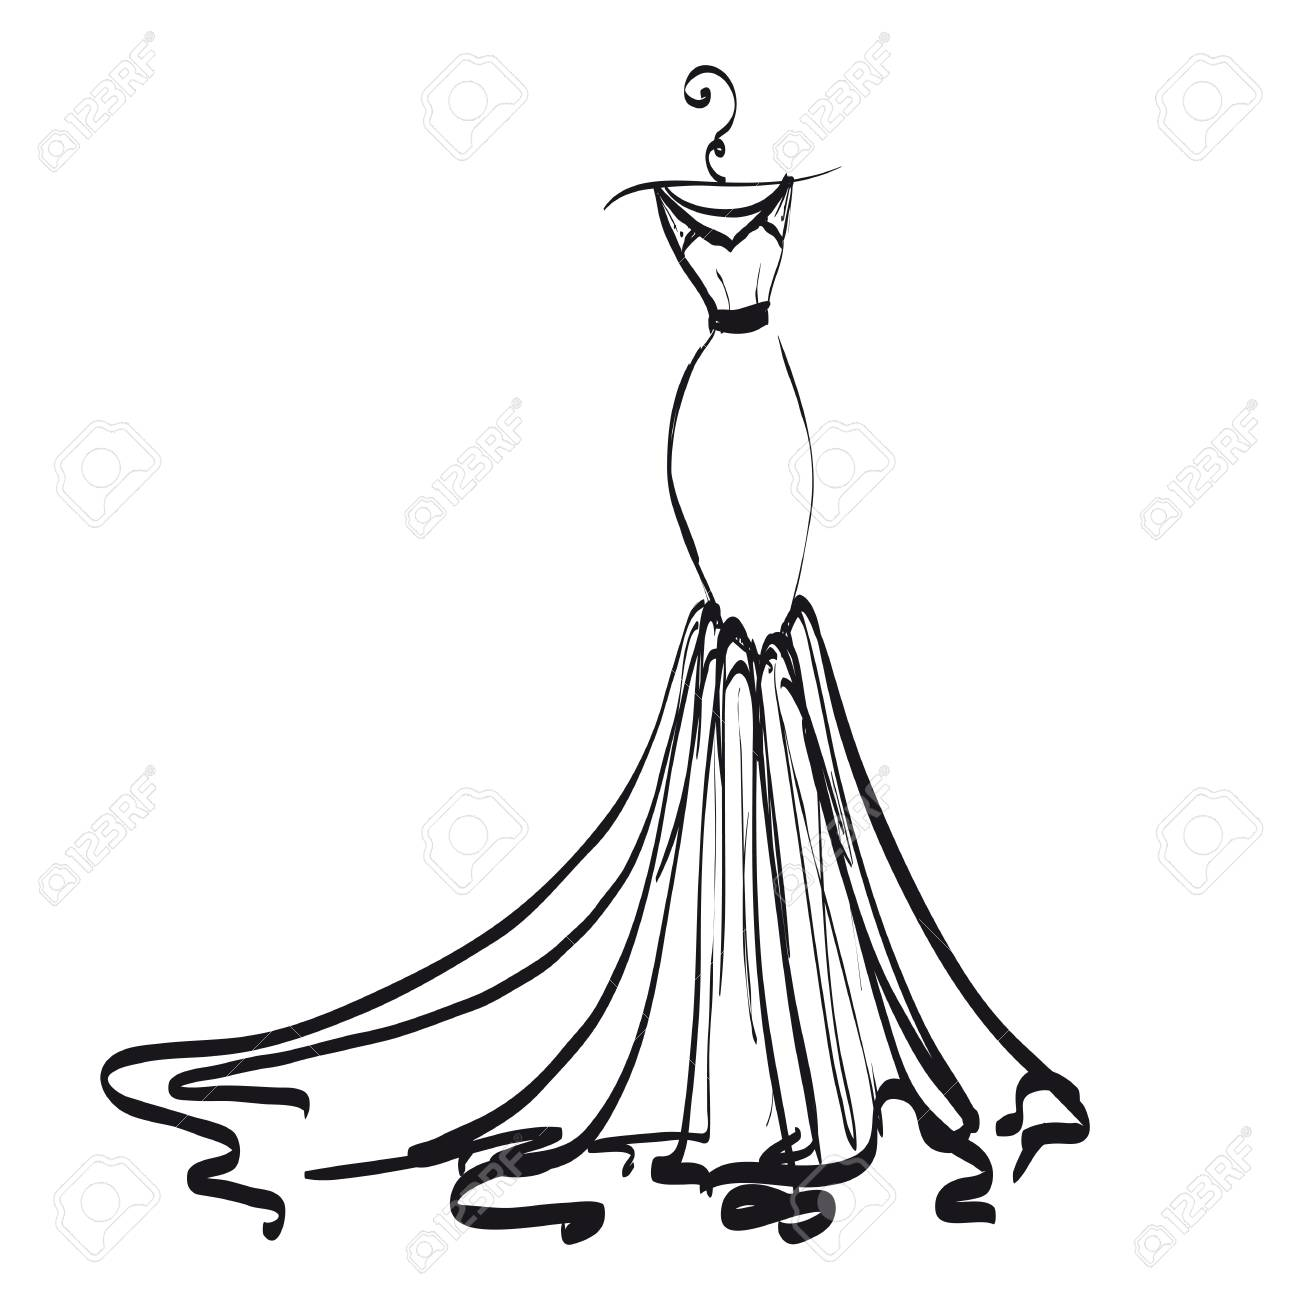 wedding dress design, black and white.